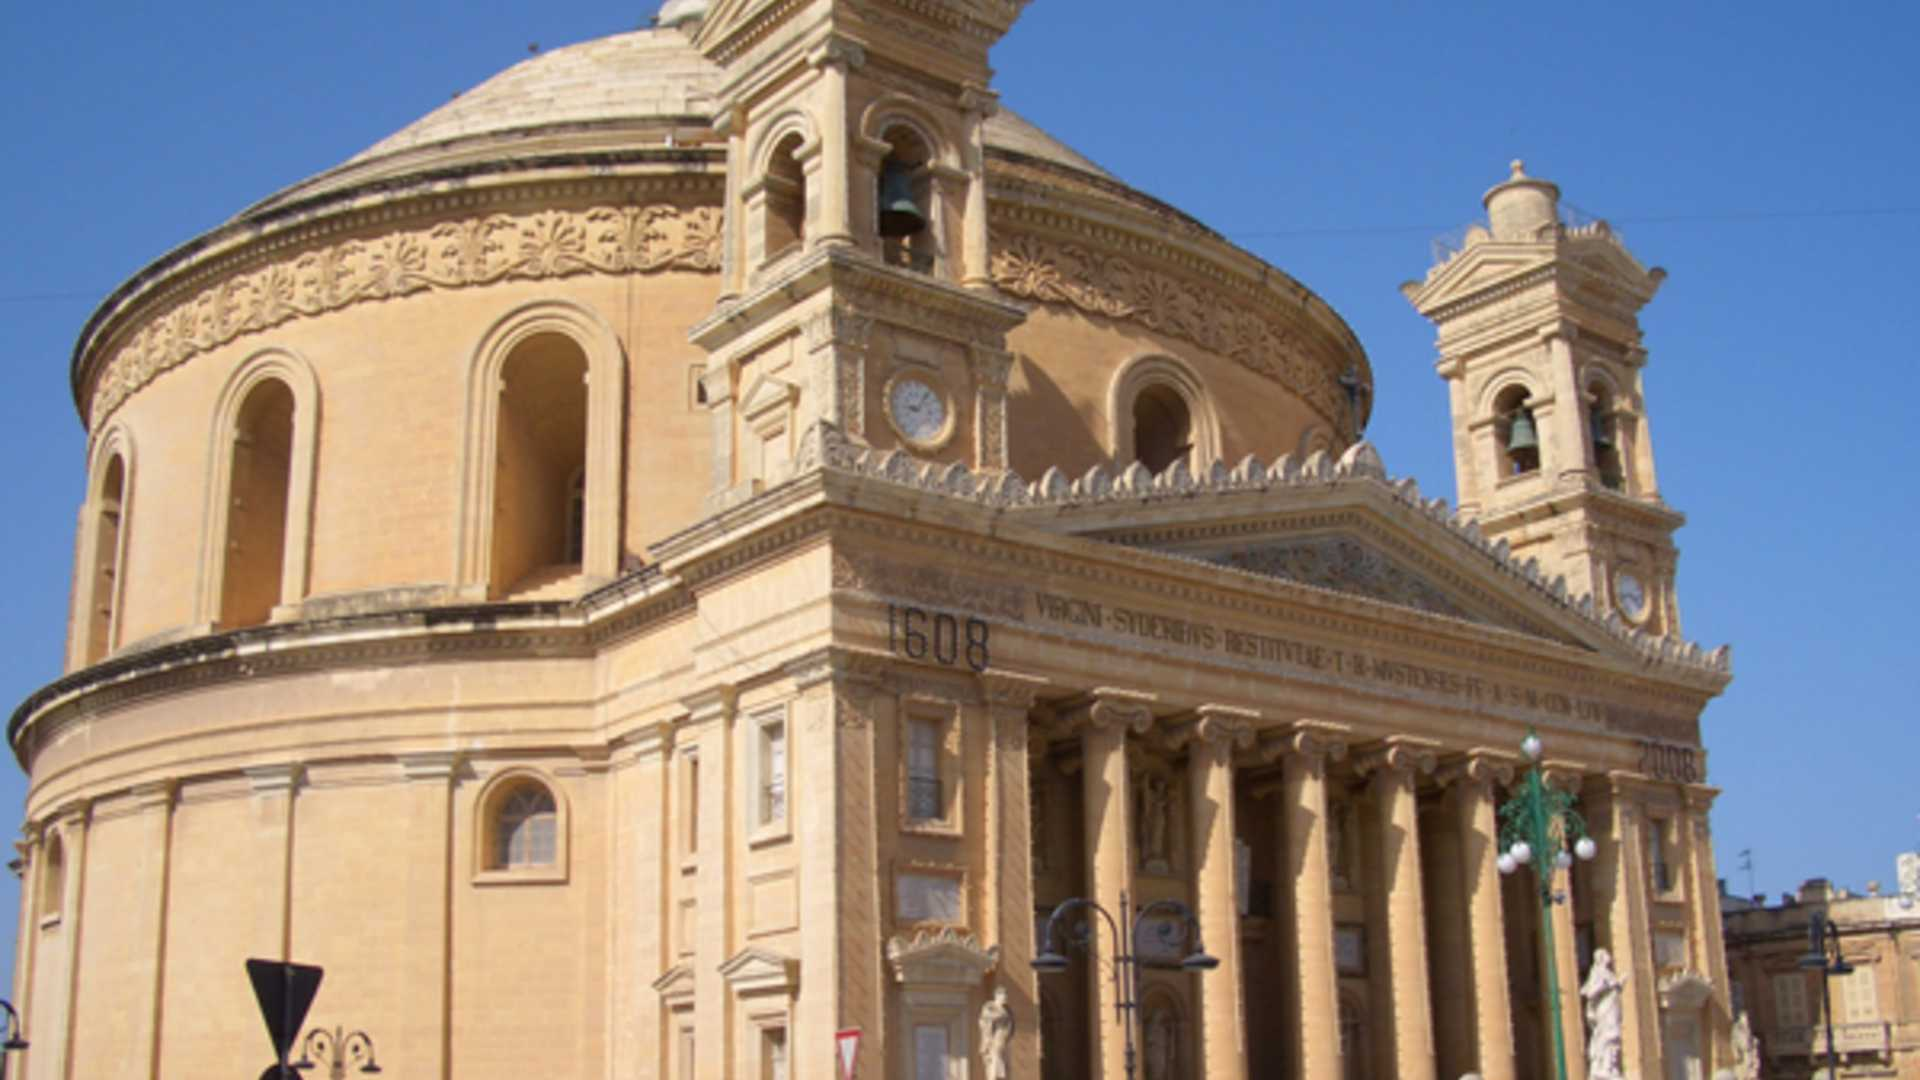 Mosta's Church and Dome